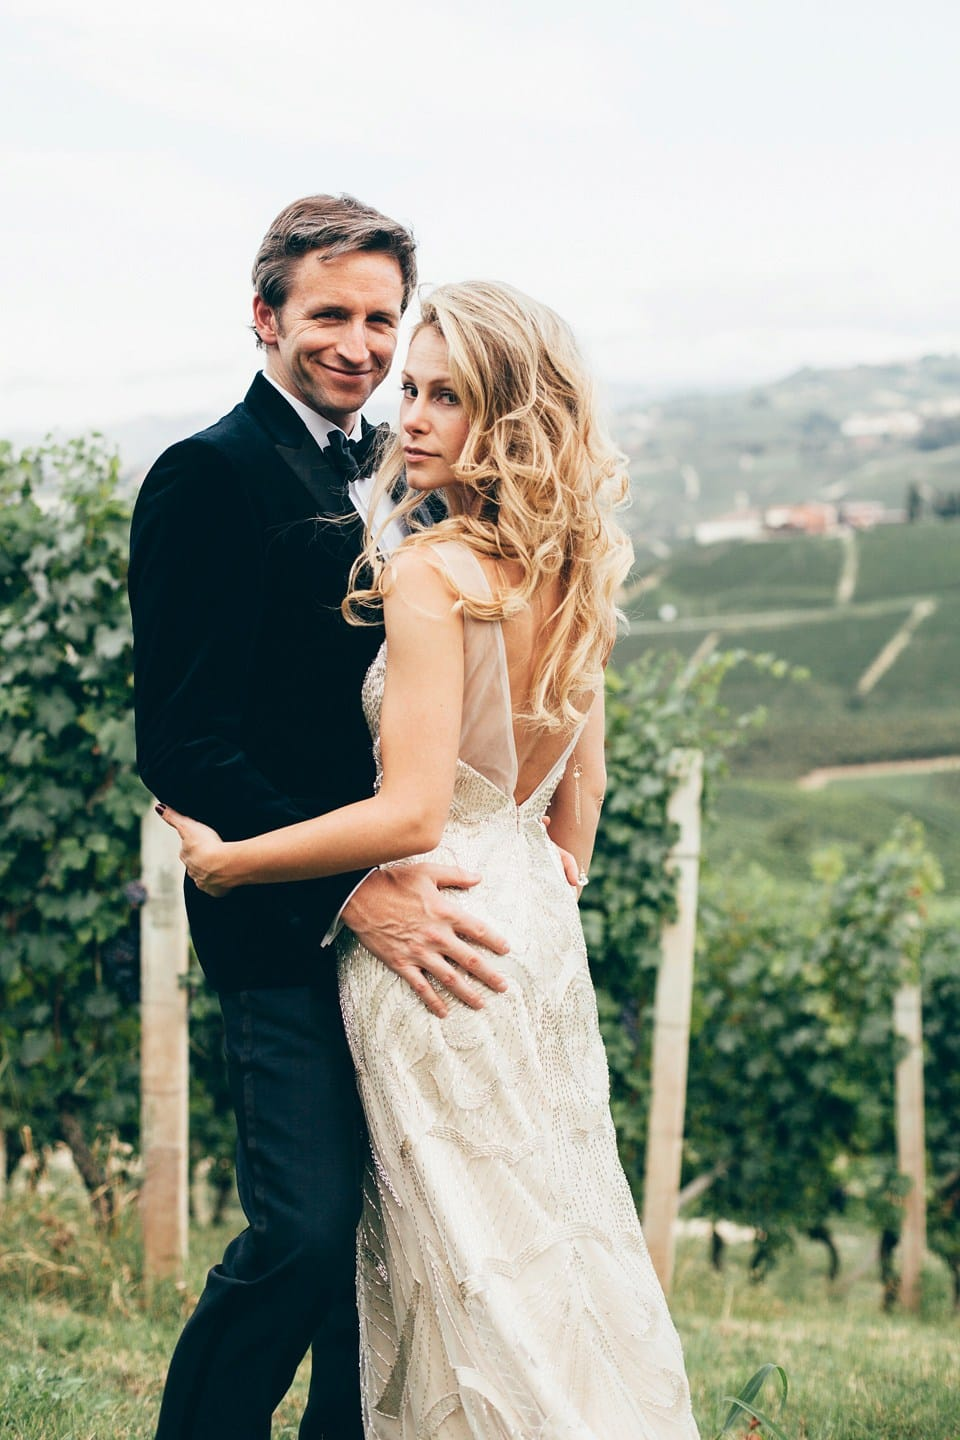 6caf04abf92 Super-Cool Italian Wedding with Vintage-Inspired Gown - Maggie Bride is  wearing Gianna ...